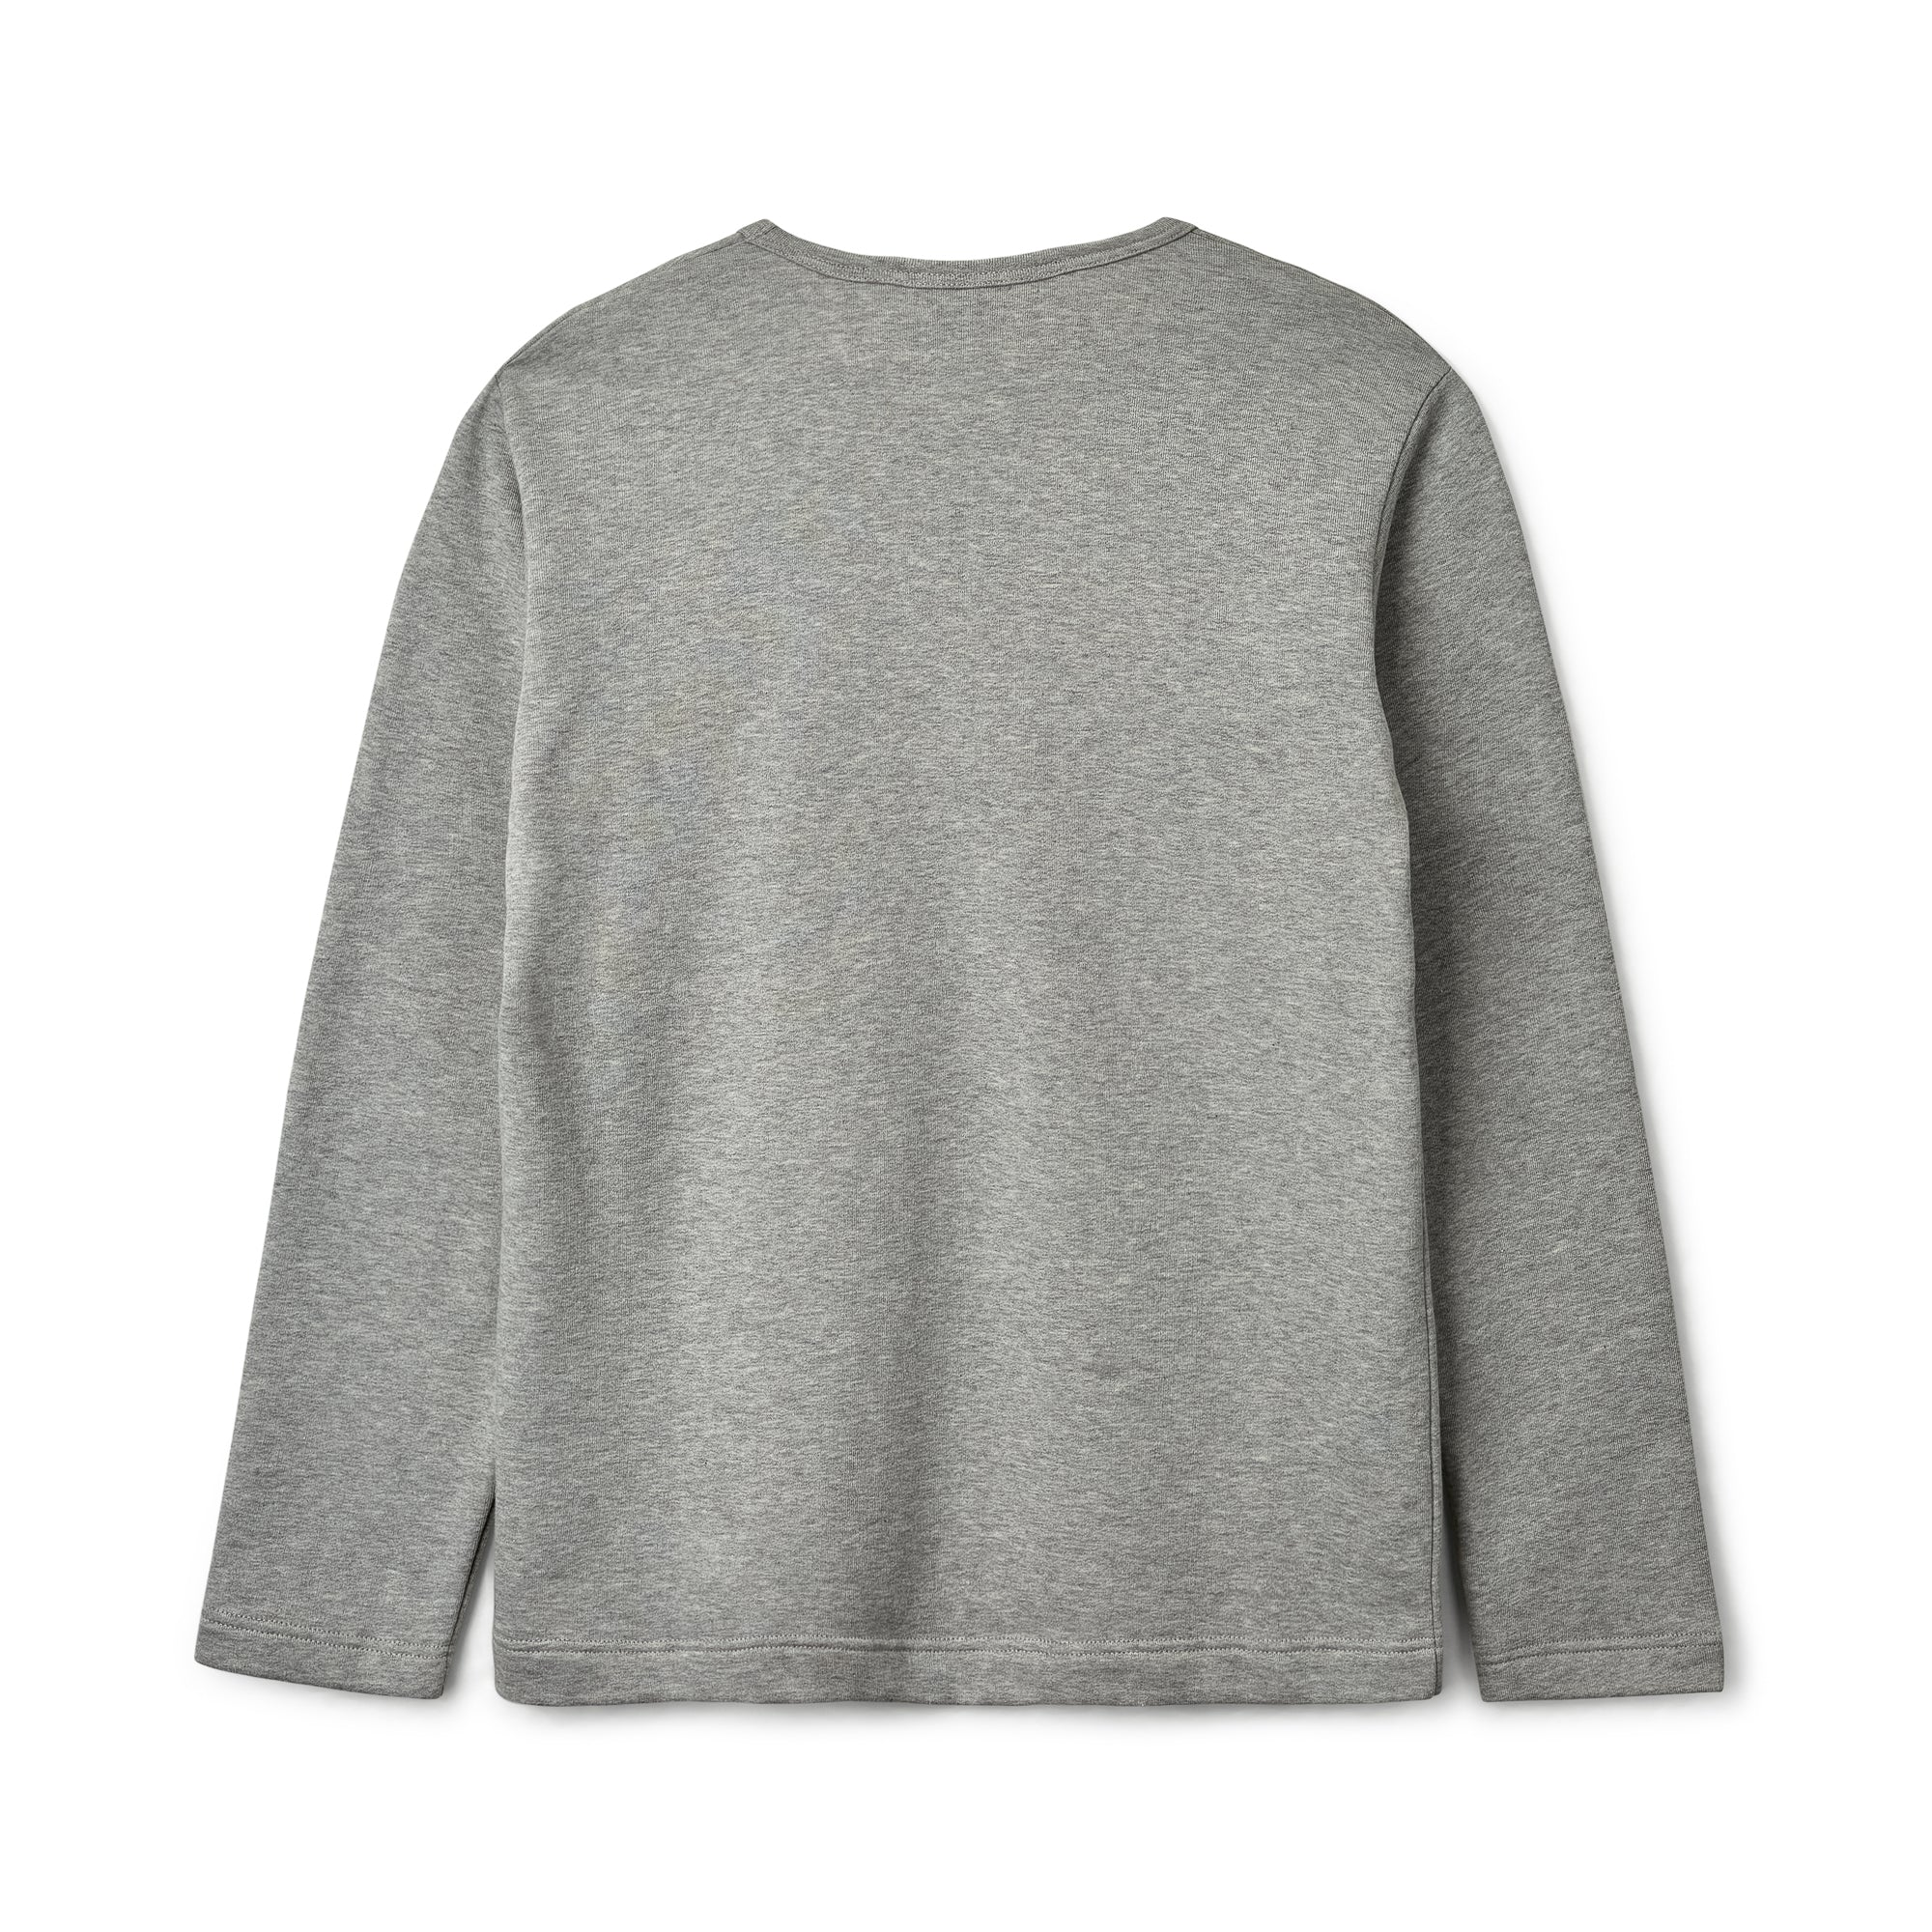 CDG Shirt x Yue Minjun Long Sleeve Sweater (Grey)